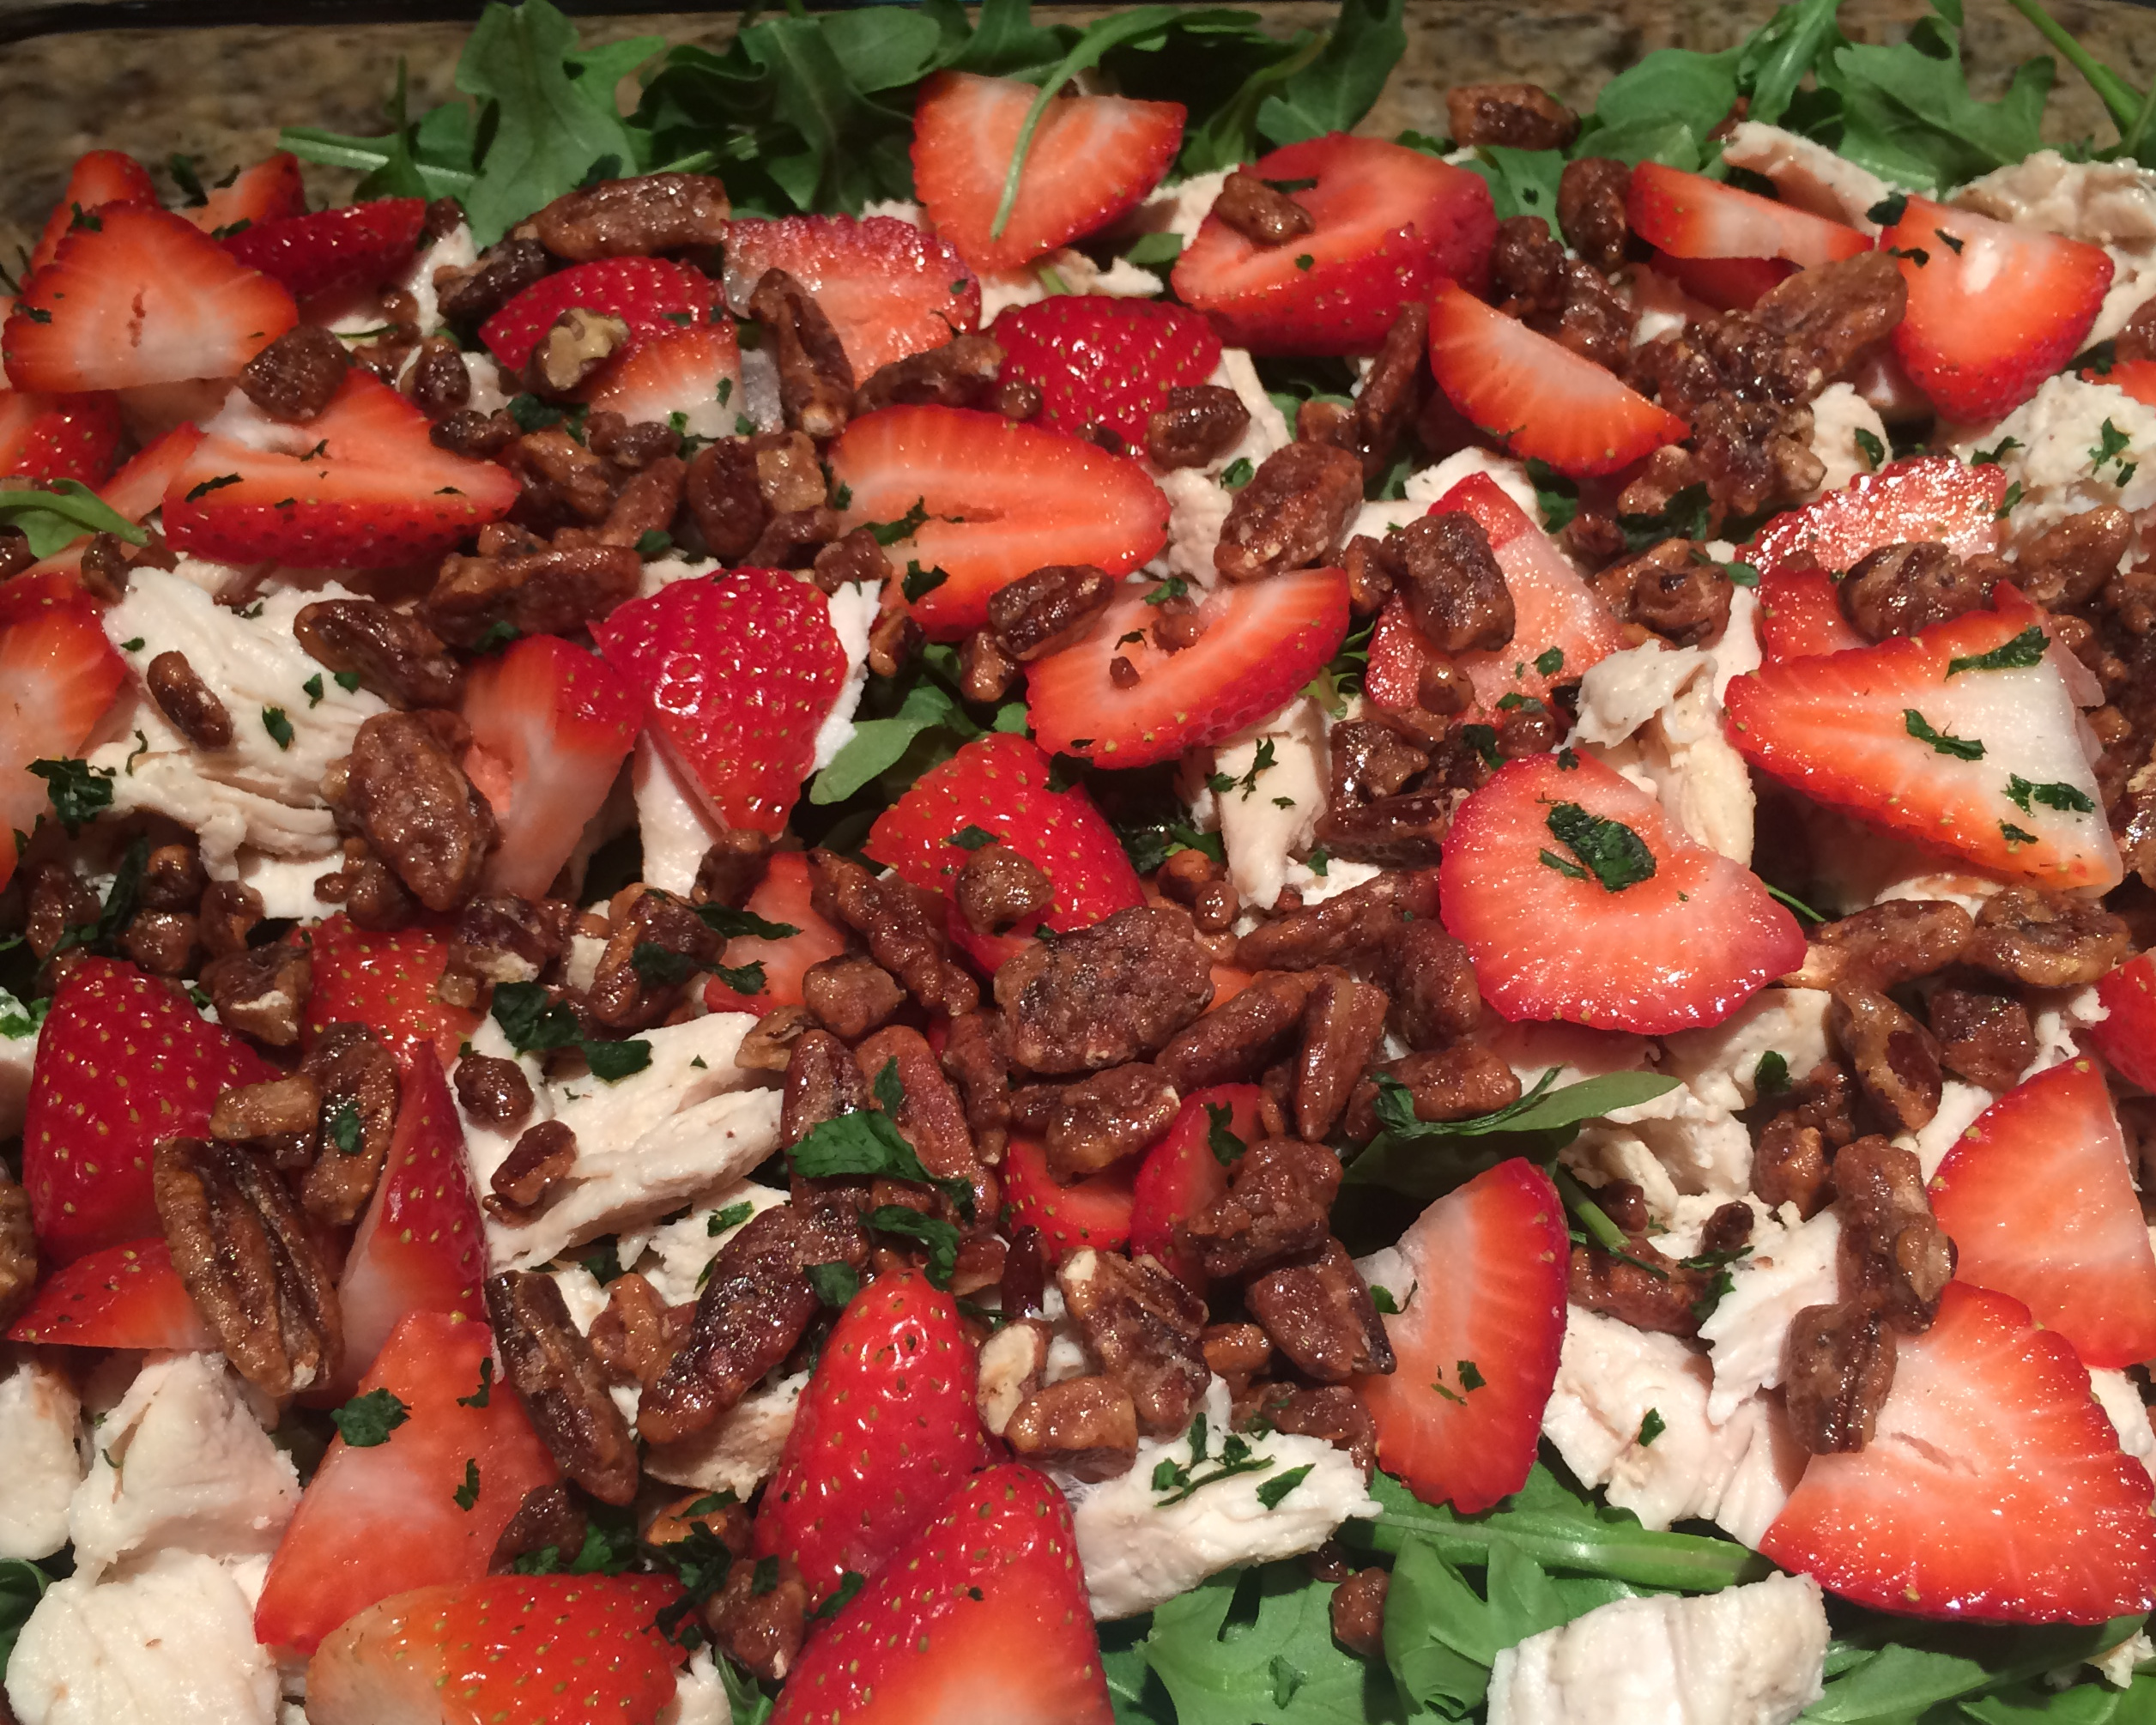 Arugula salad with grilled chicken, strawberries, candied pecans and goat cheese